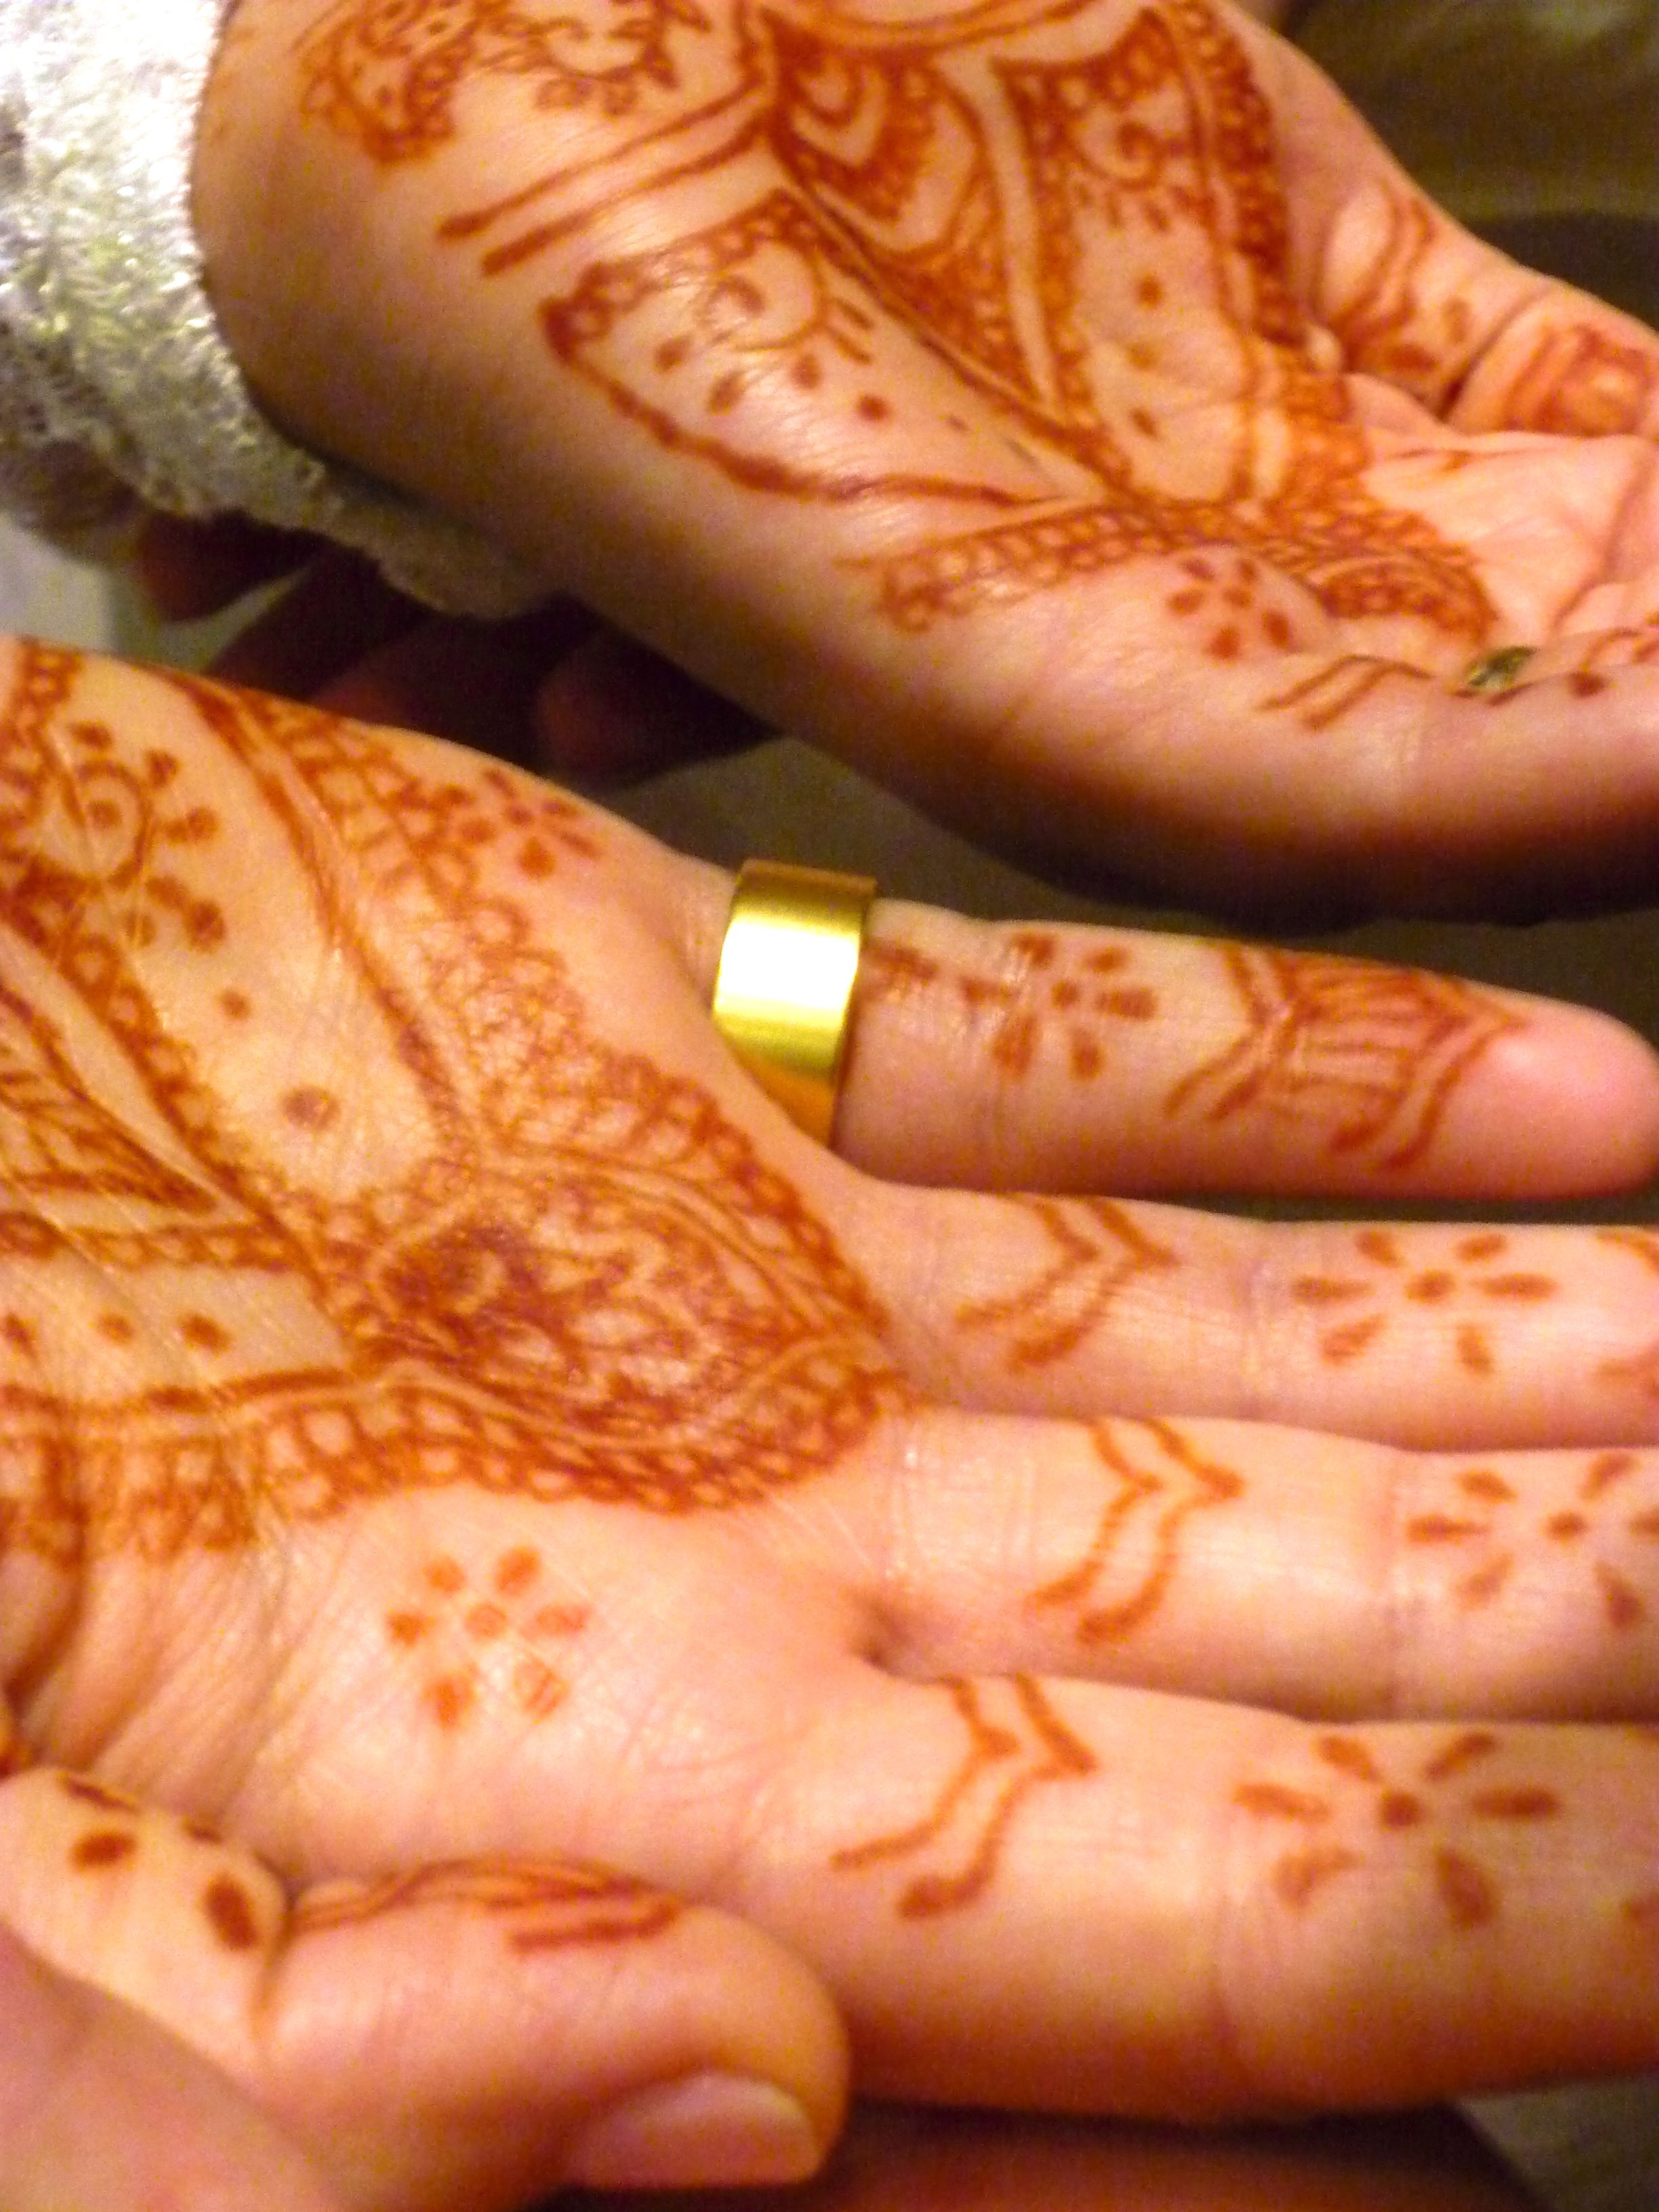 Egyptian Henna Designs: Egyptian Wedding, Wedding Henna